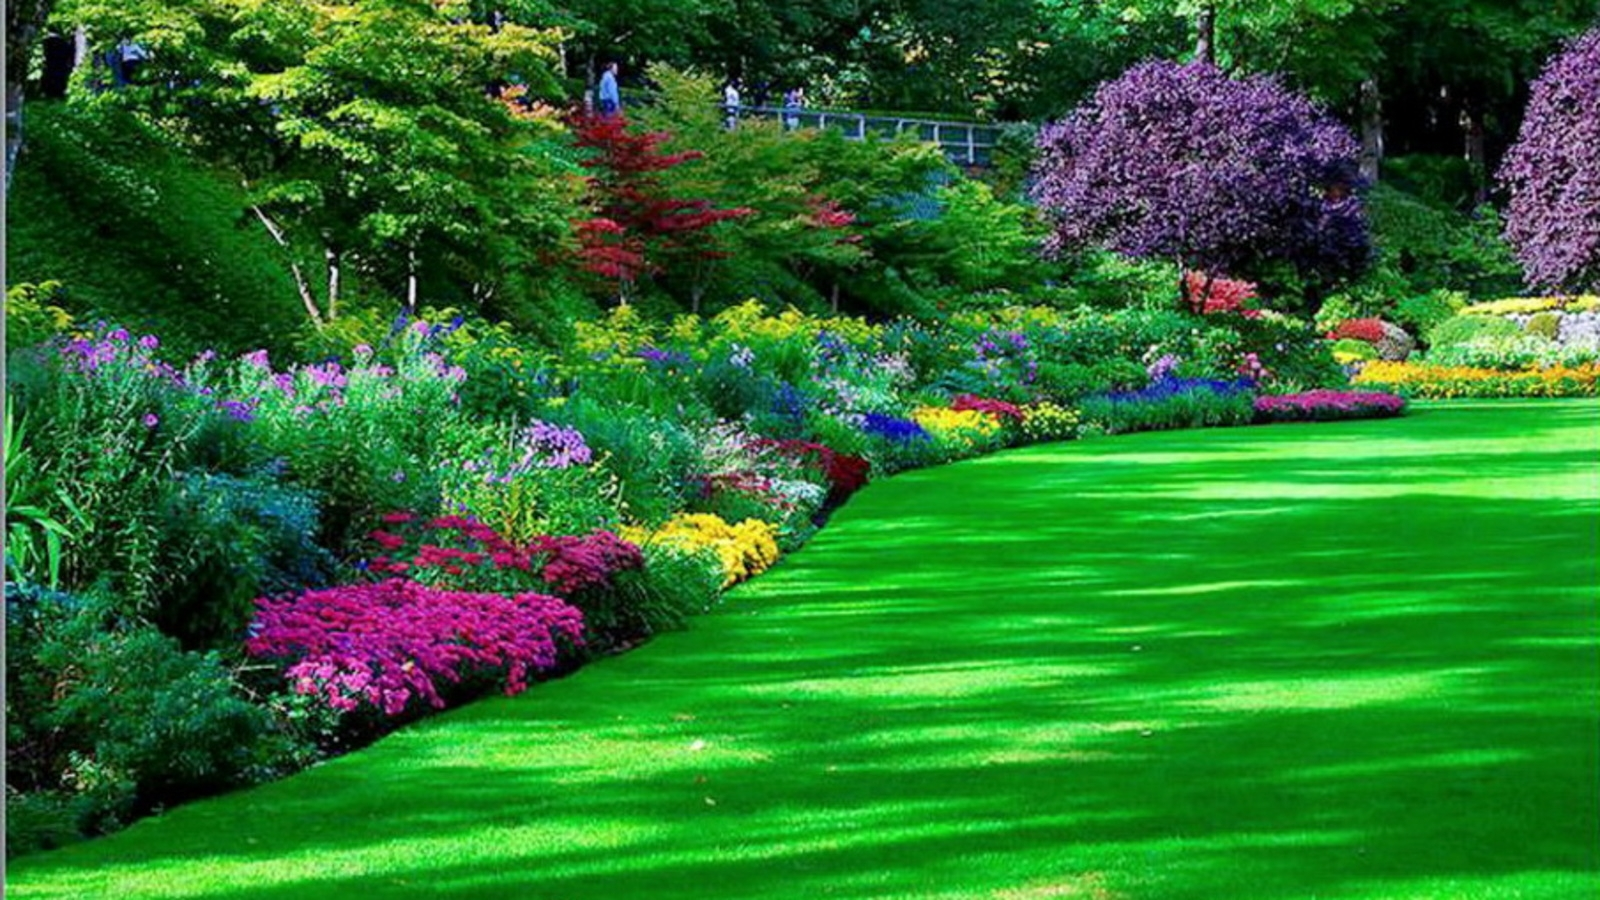 264 garden hd wallpapers | background images - wallpaper abyss